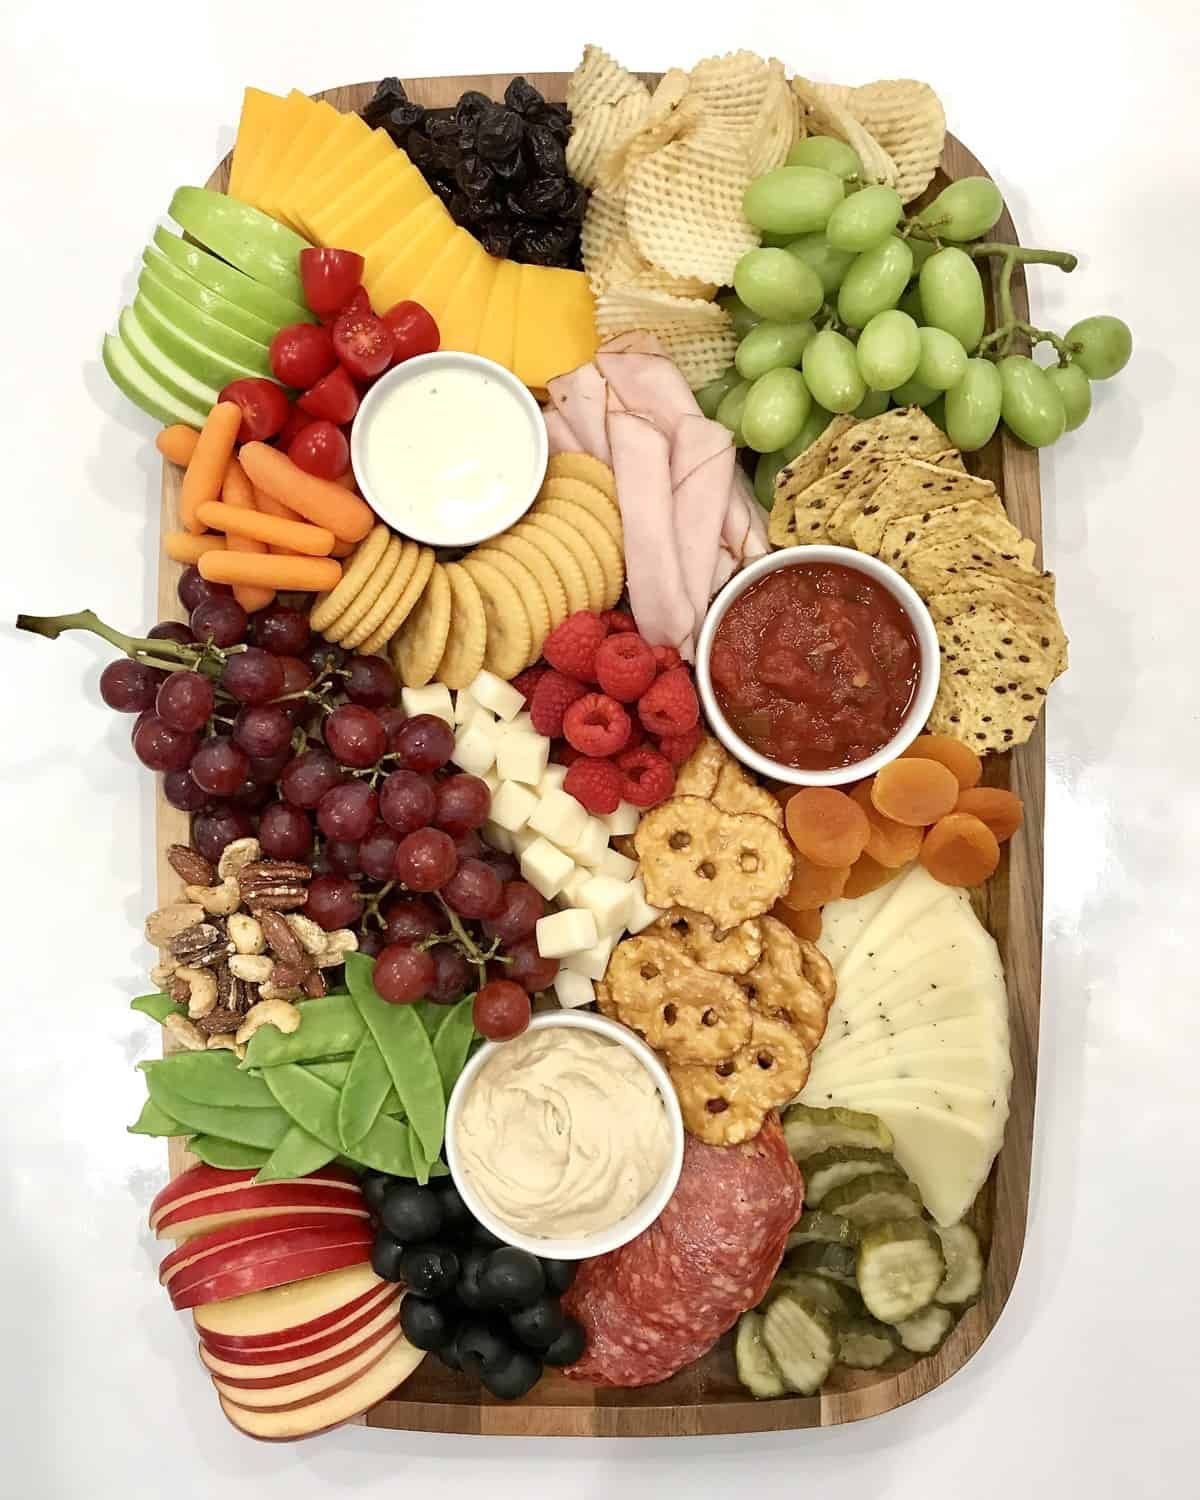 Snack Board by The BakerMama